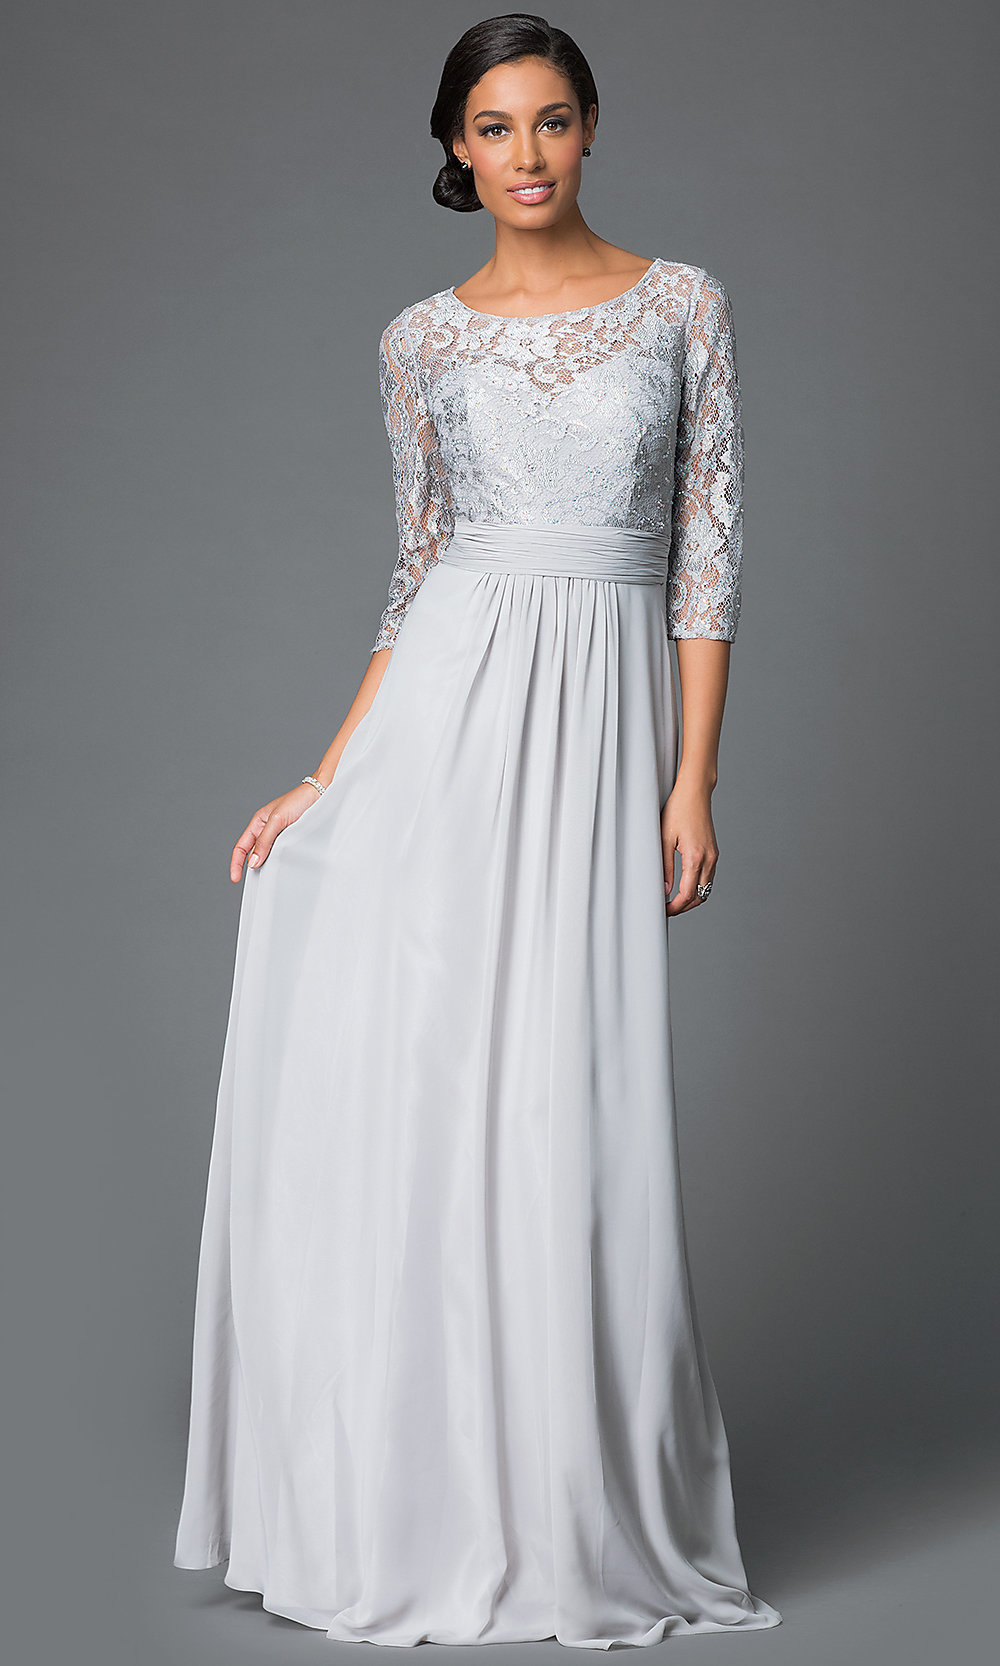 Long Lace Top Dress With Three Quarter Length Sleeves